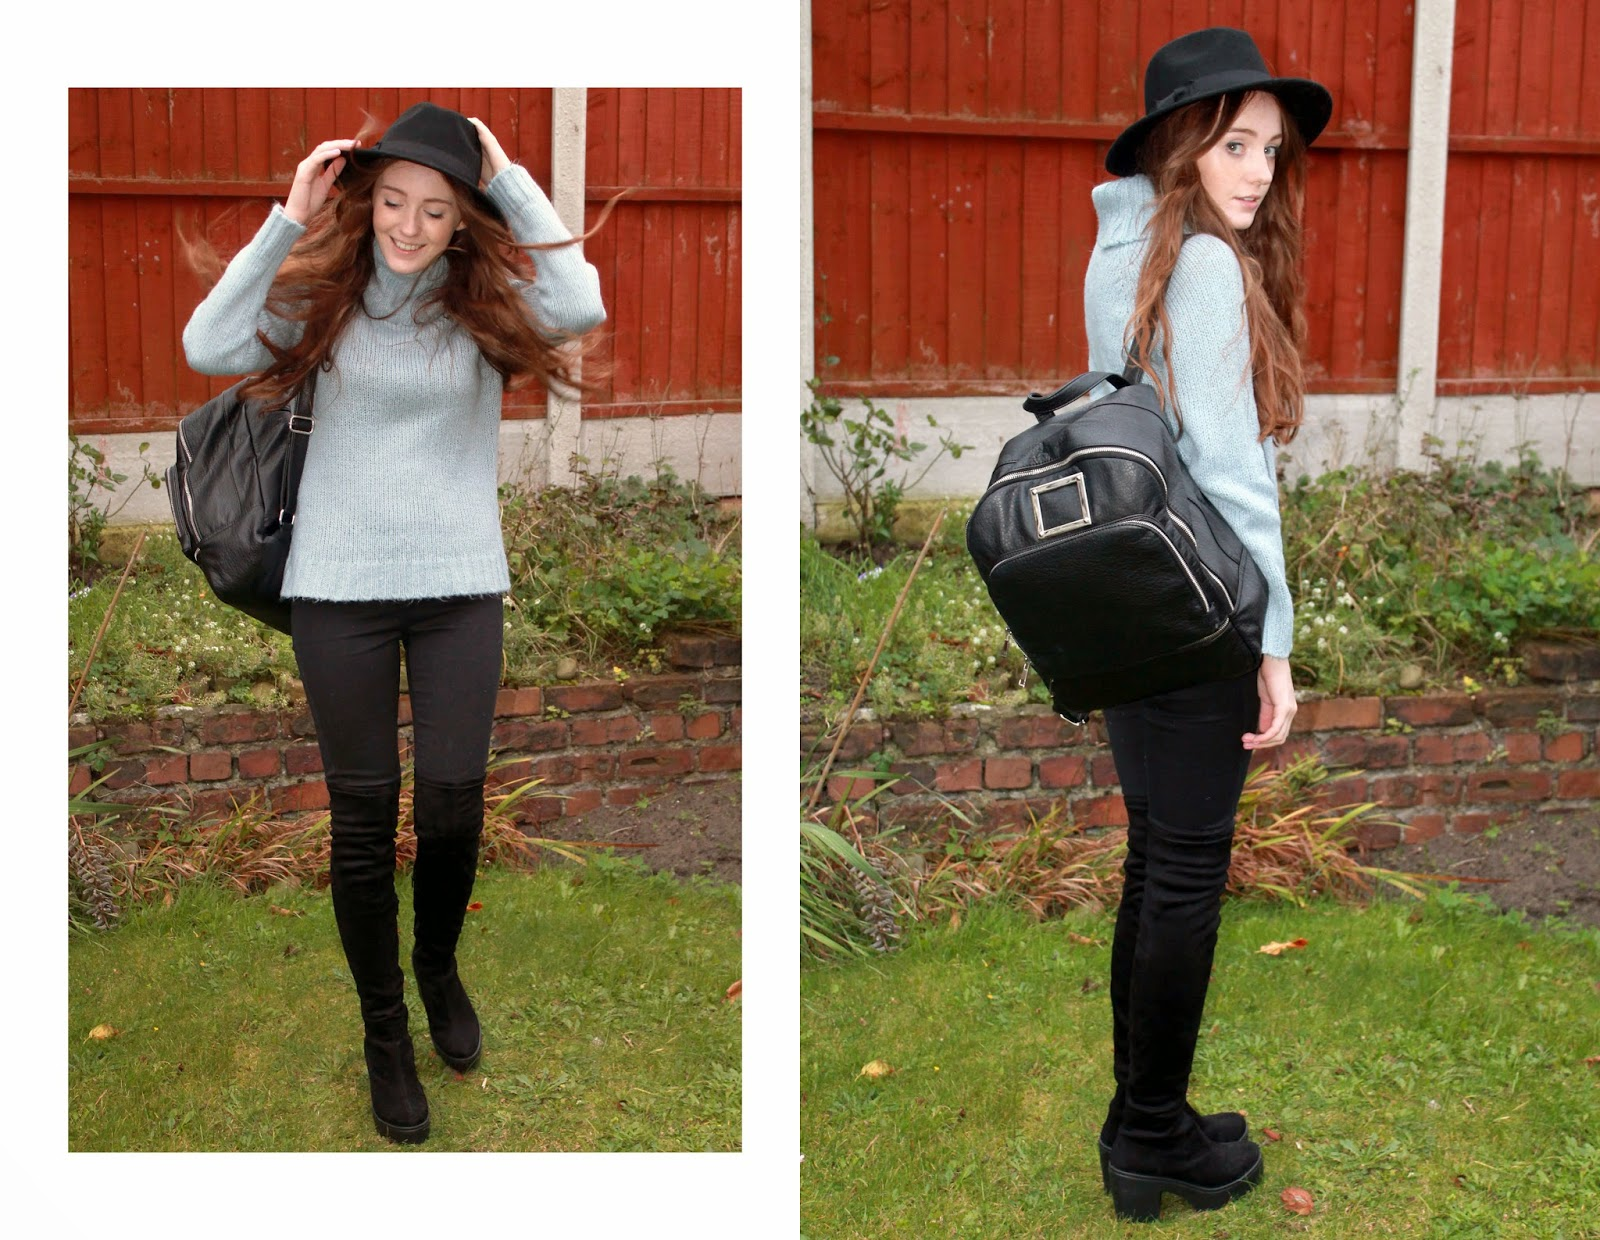 black primark fedora, pale blue roll neck jumper, black asos backpack, river island black lana skinny jeans and river island black heeled suede over the knee boots